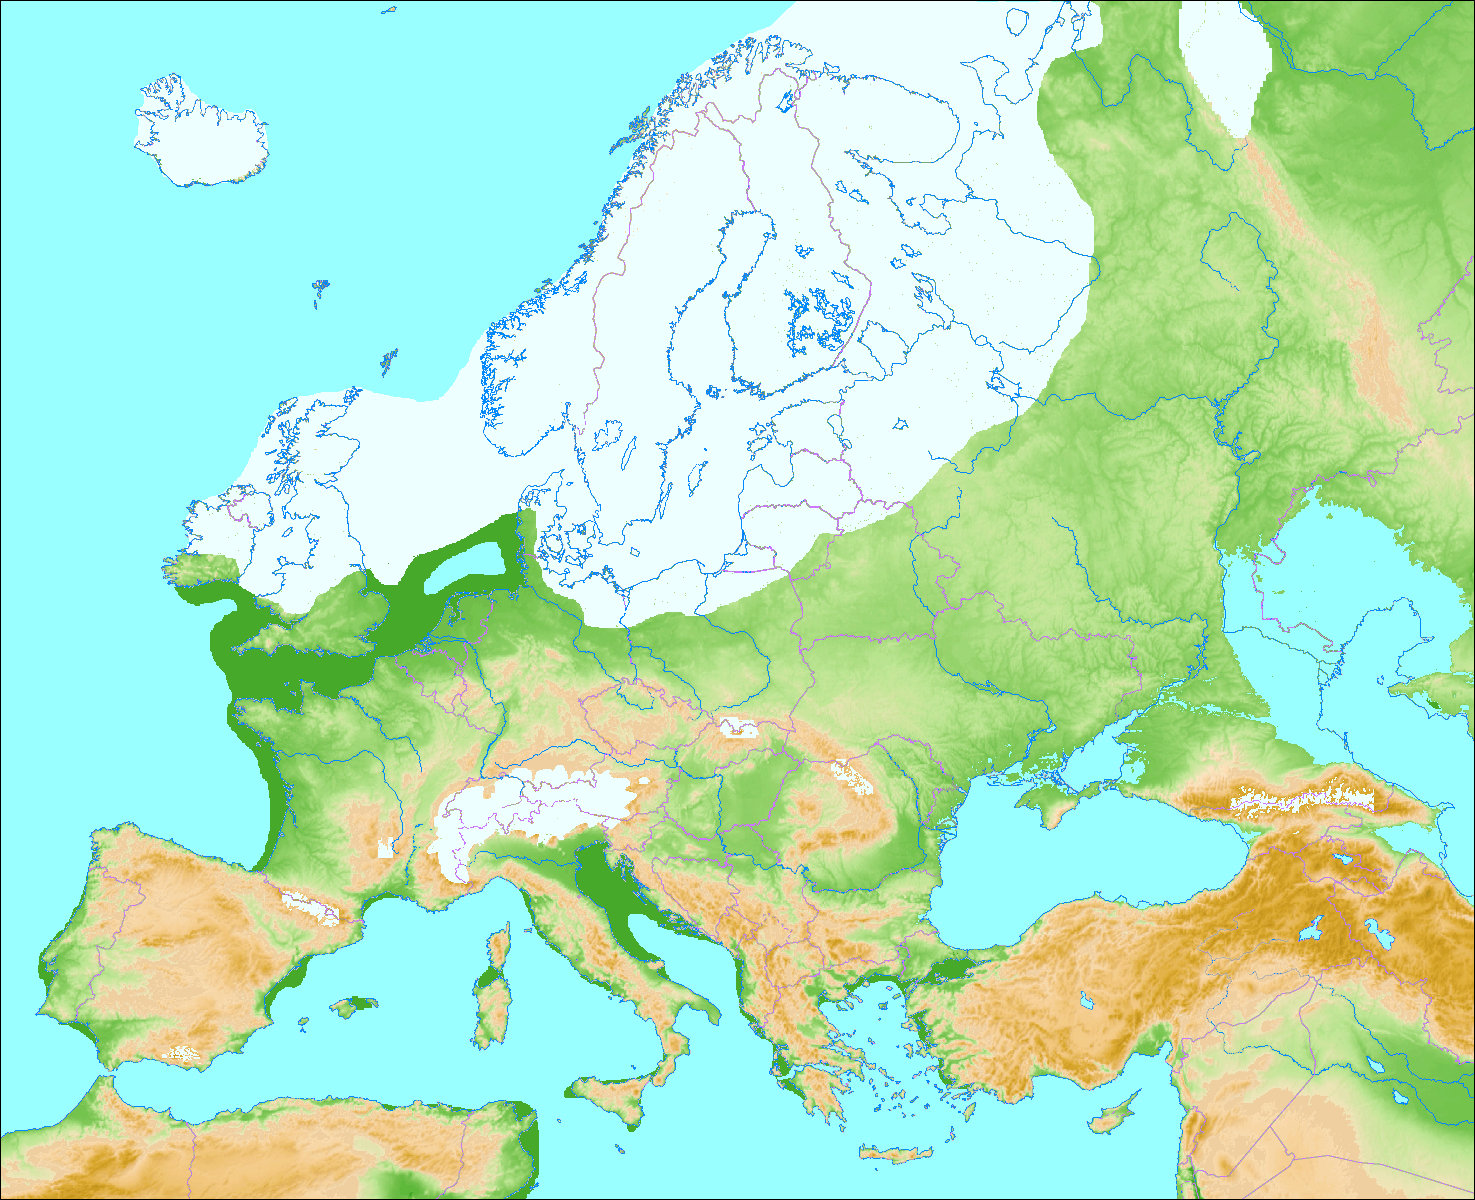 europe during last glacial period weichselian glaciation in scandinavia and northern europe ice sheets